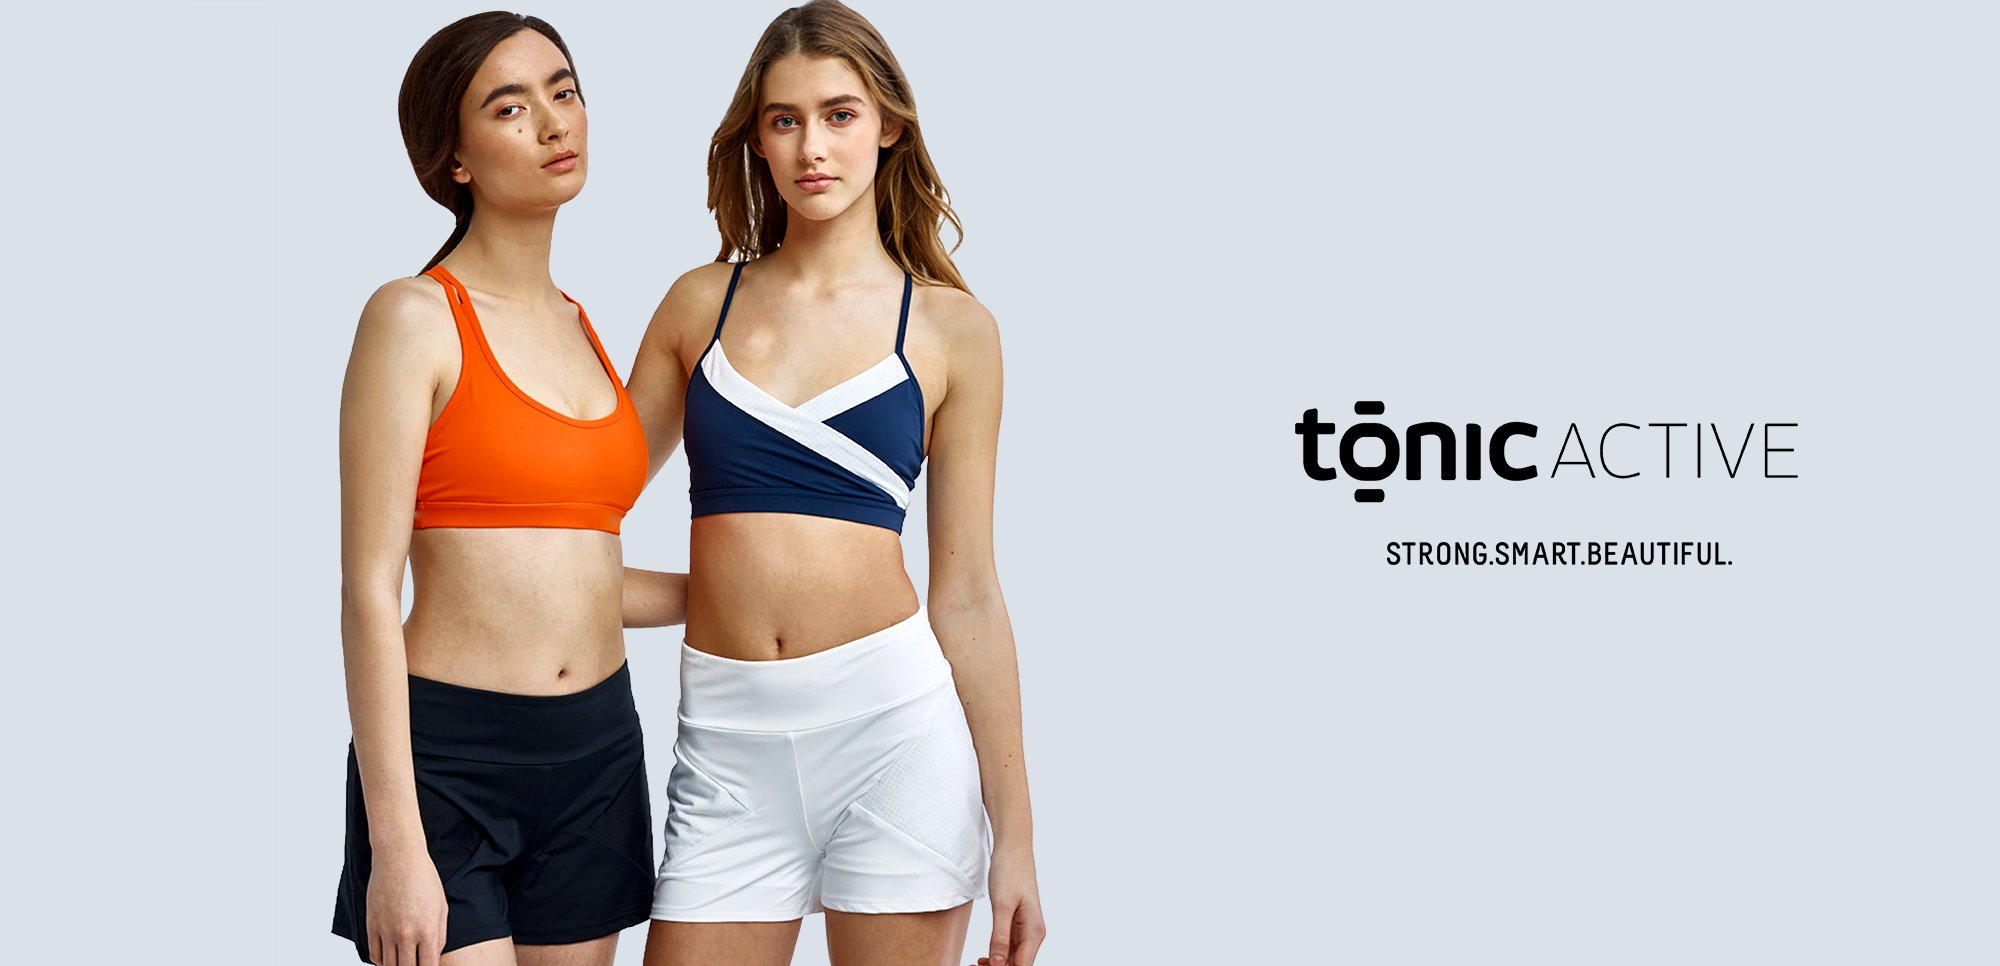 Tonic Active Winter Sportswear Collection